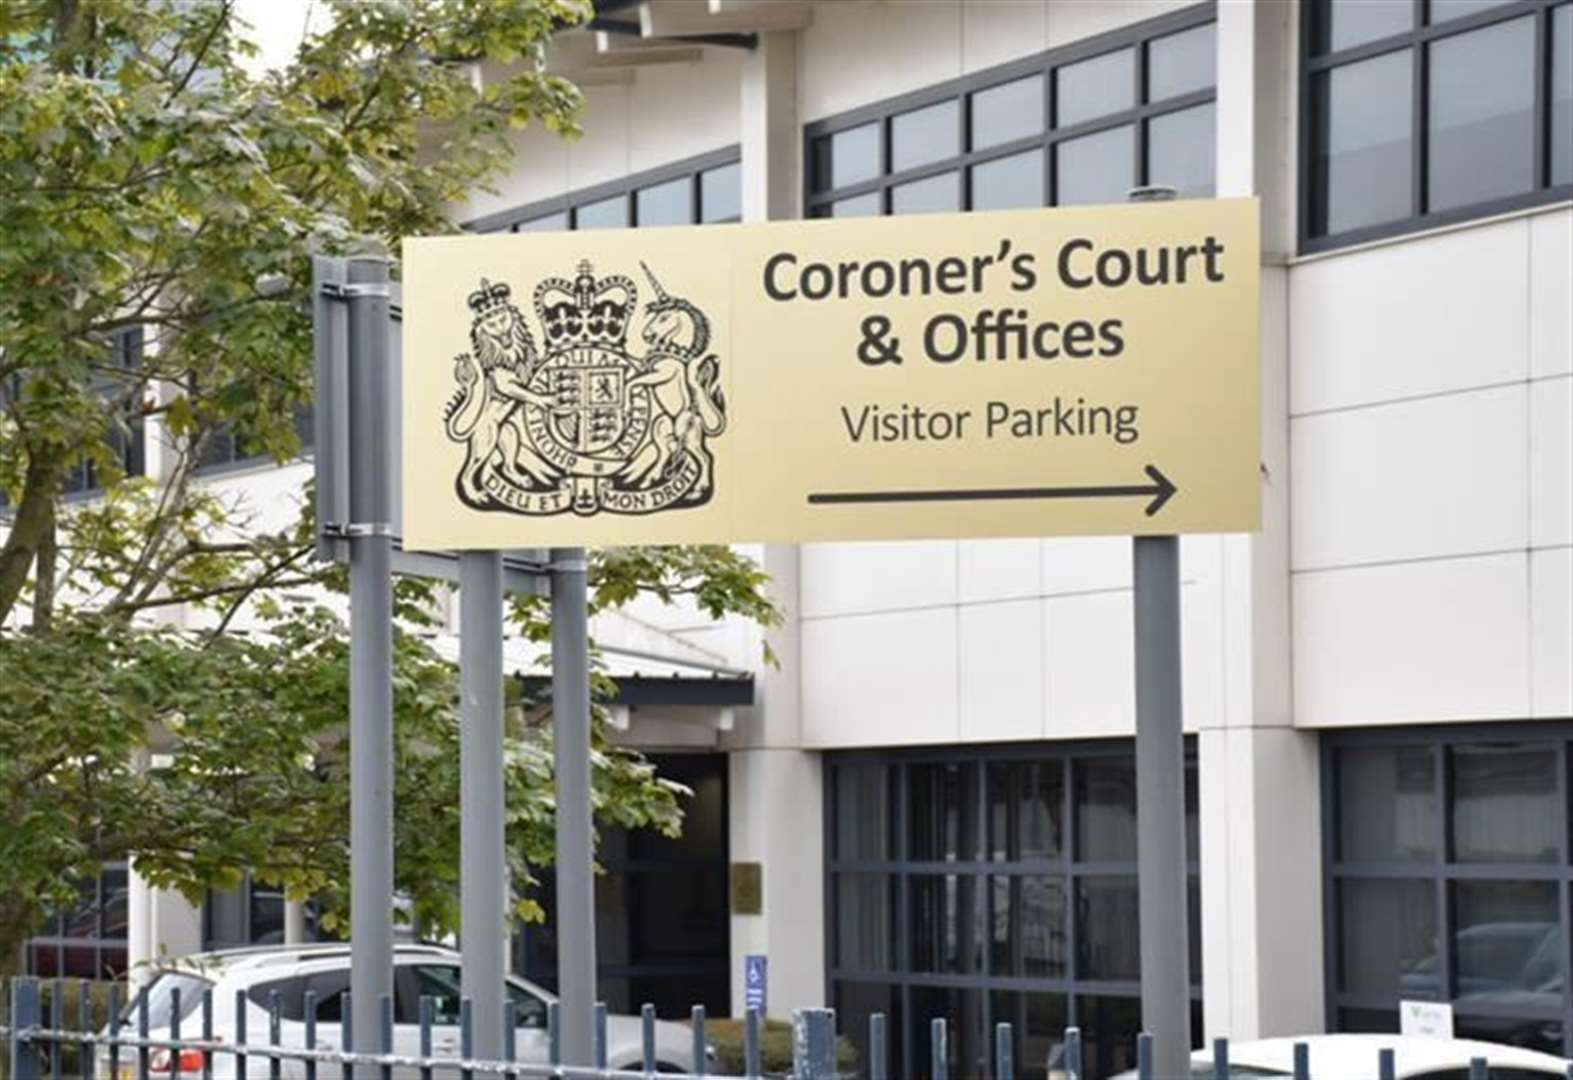 Treatment abroad contributed to 83-year-old's death – inquest